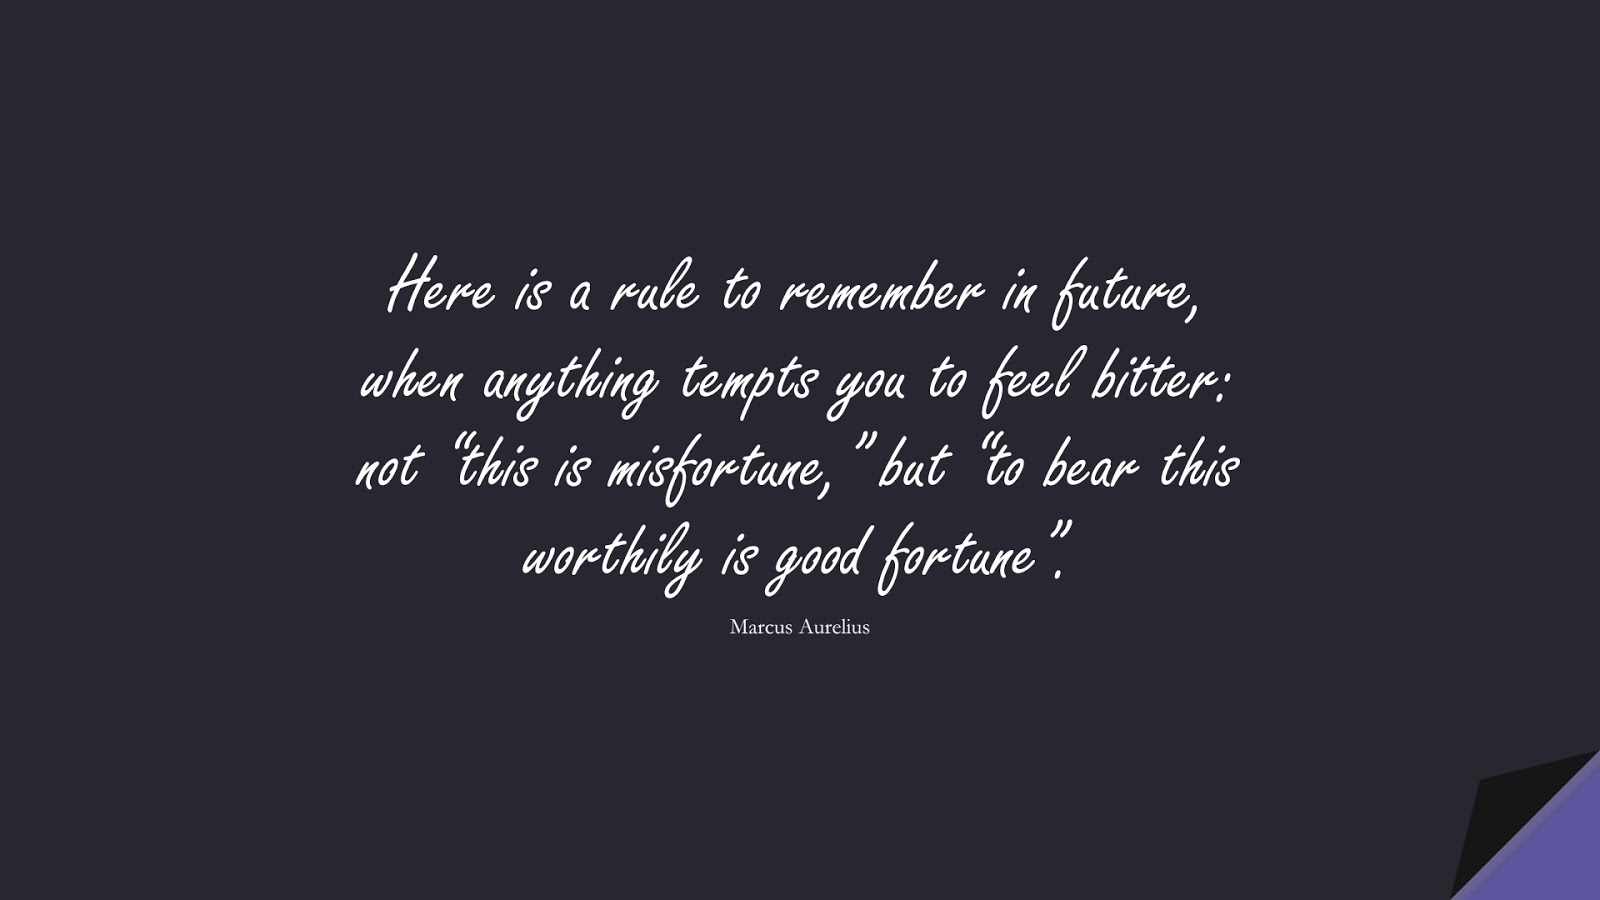 """Here is a rule to remember in future, when anything tempts you to feel bitter: not """"this is misfortune,"""" but """"to bear this worthily is good fortune"""". (Marcus Aurelius);  #MarcusAureliusQuotes"""